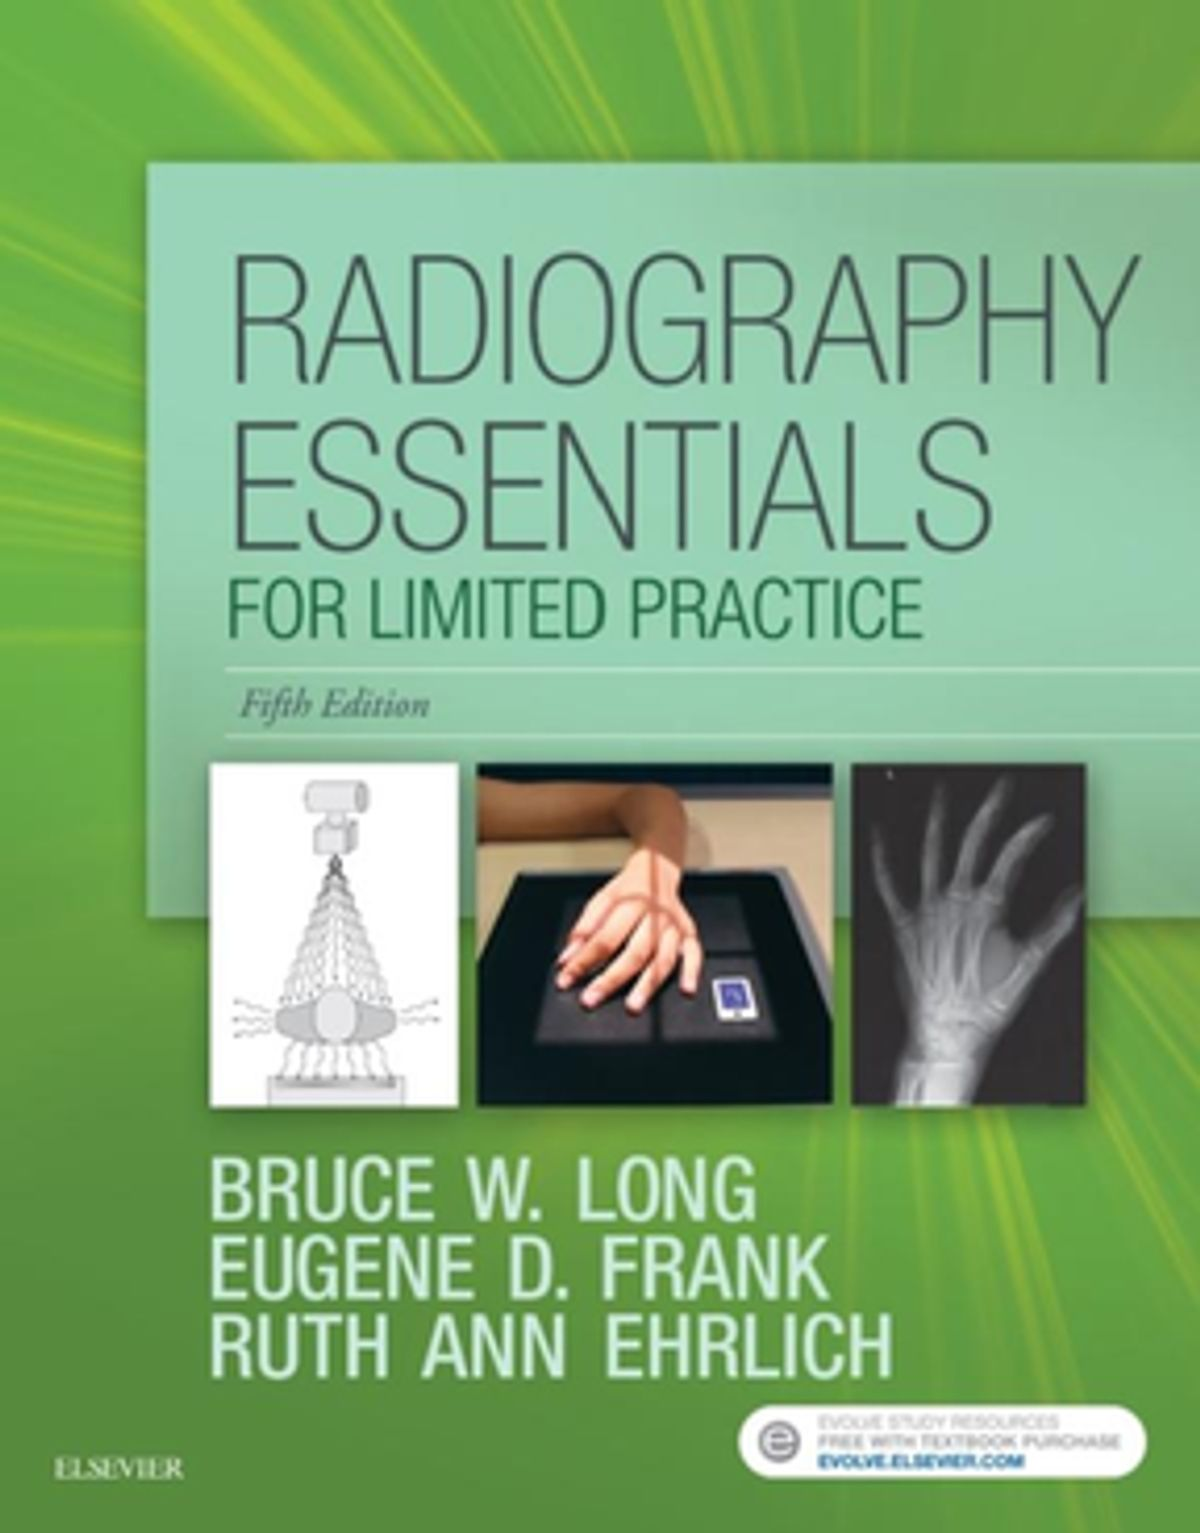 radiography-essentials-for-limited-practice-e-book-1